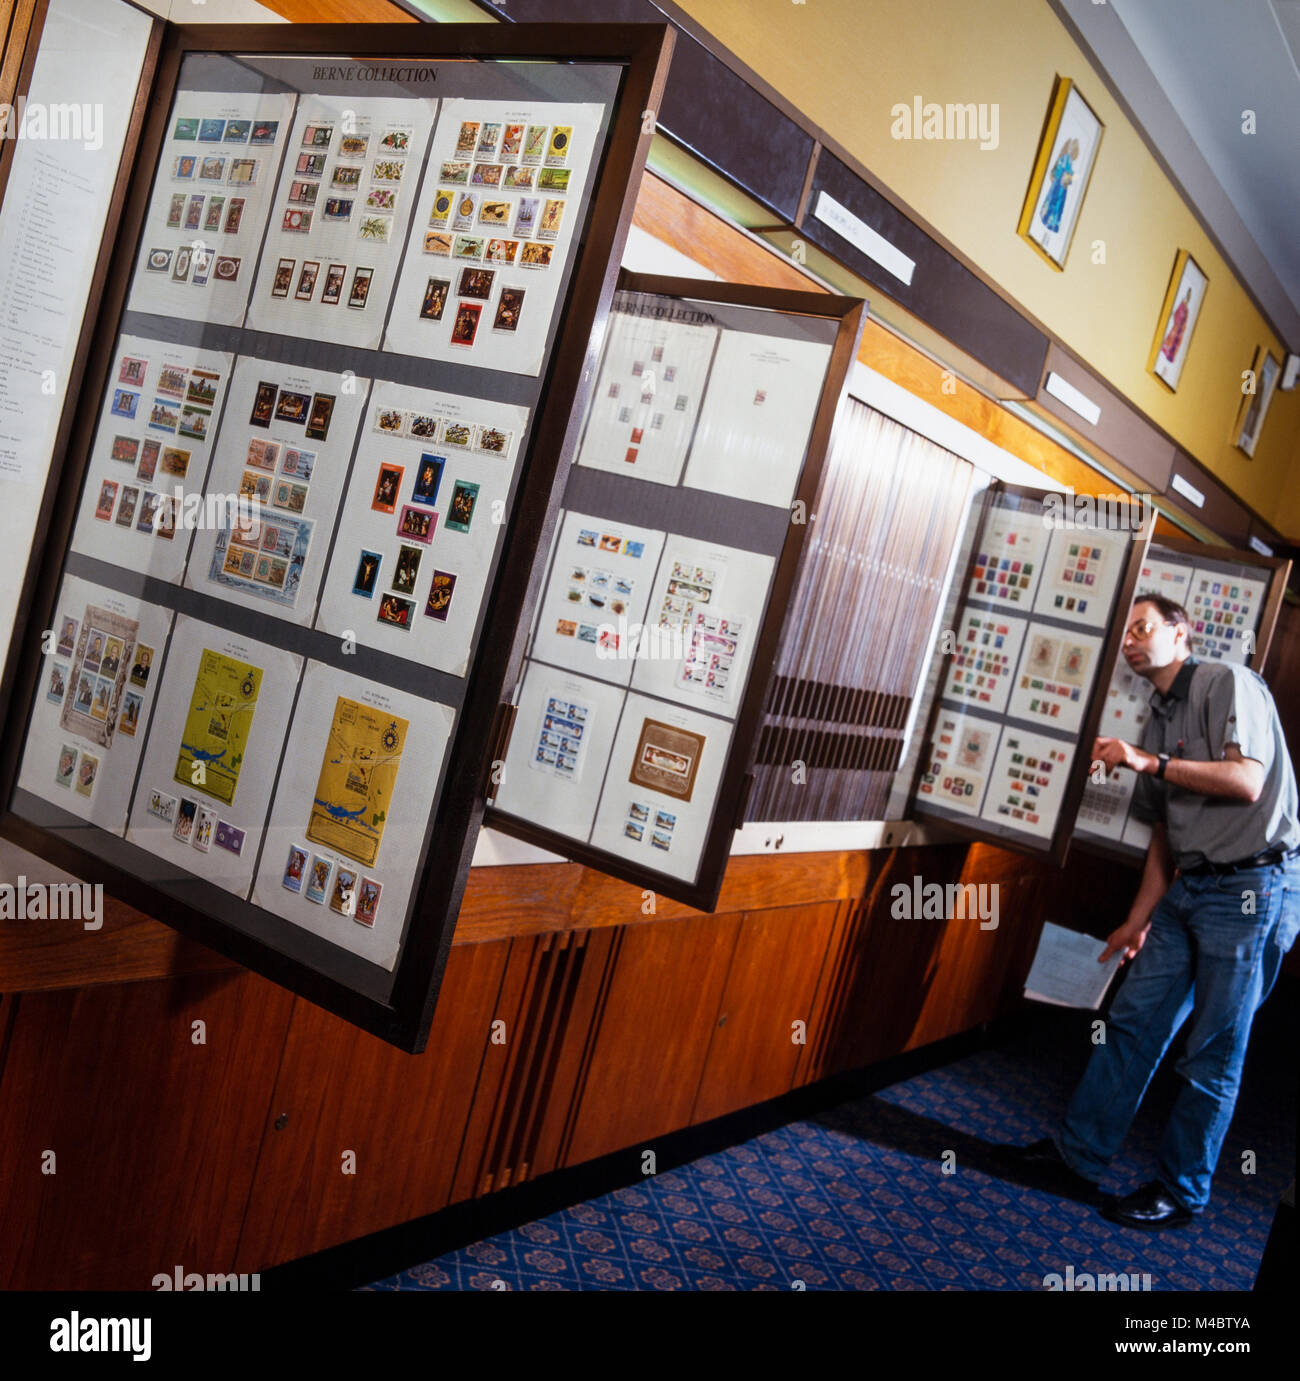 National Postal Museum, King Edward Street, London, stamps of the world collection on display, archival photograph - Stock Image